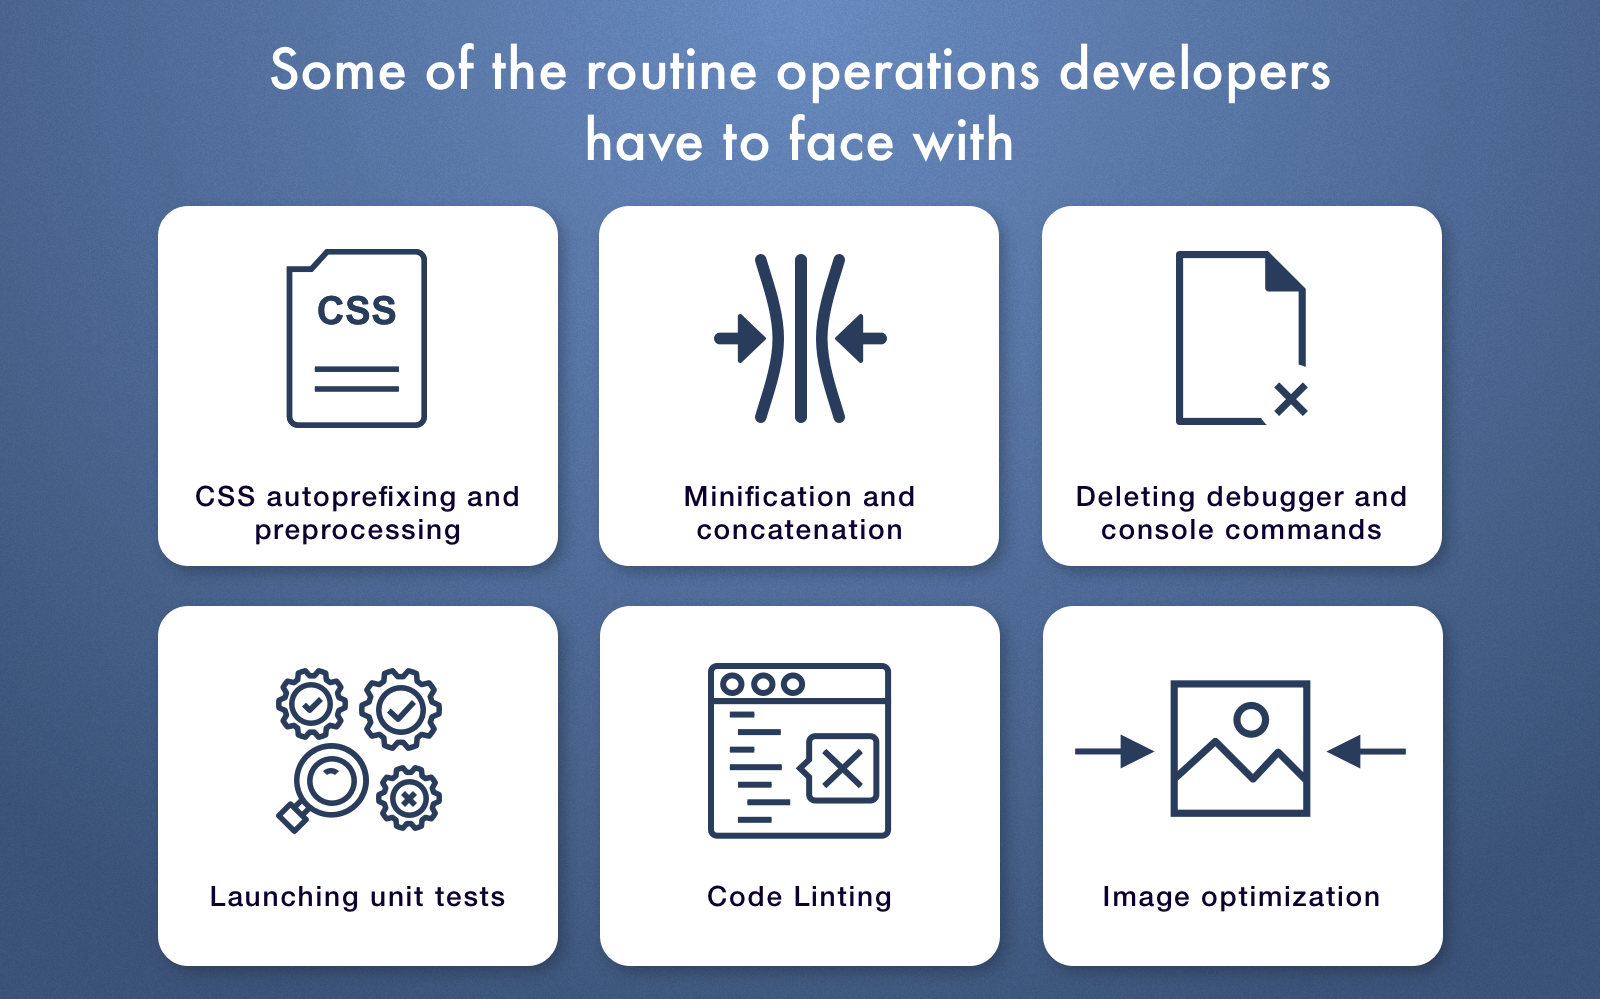 routine developers' operations